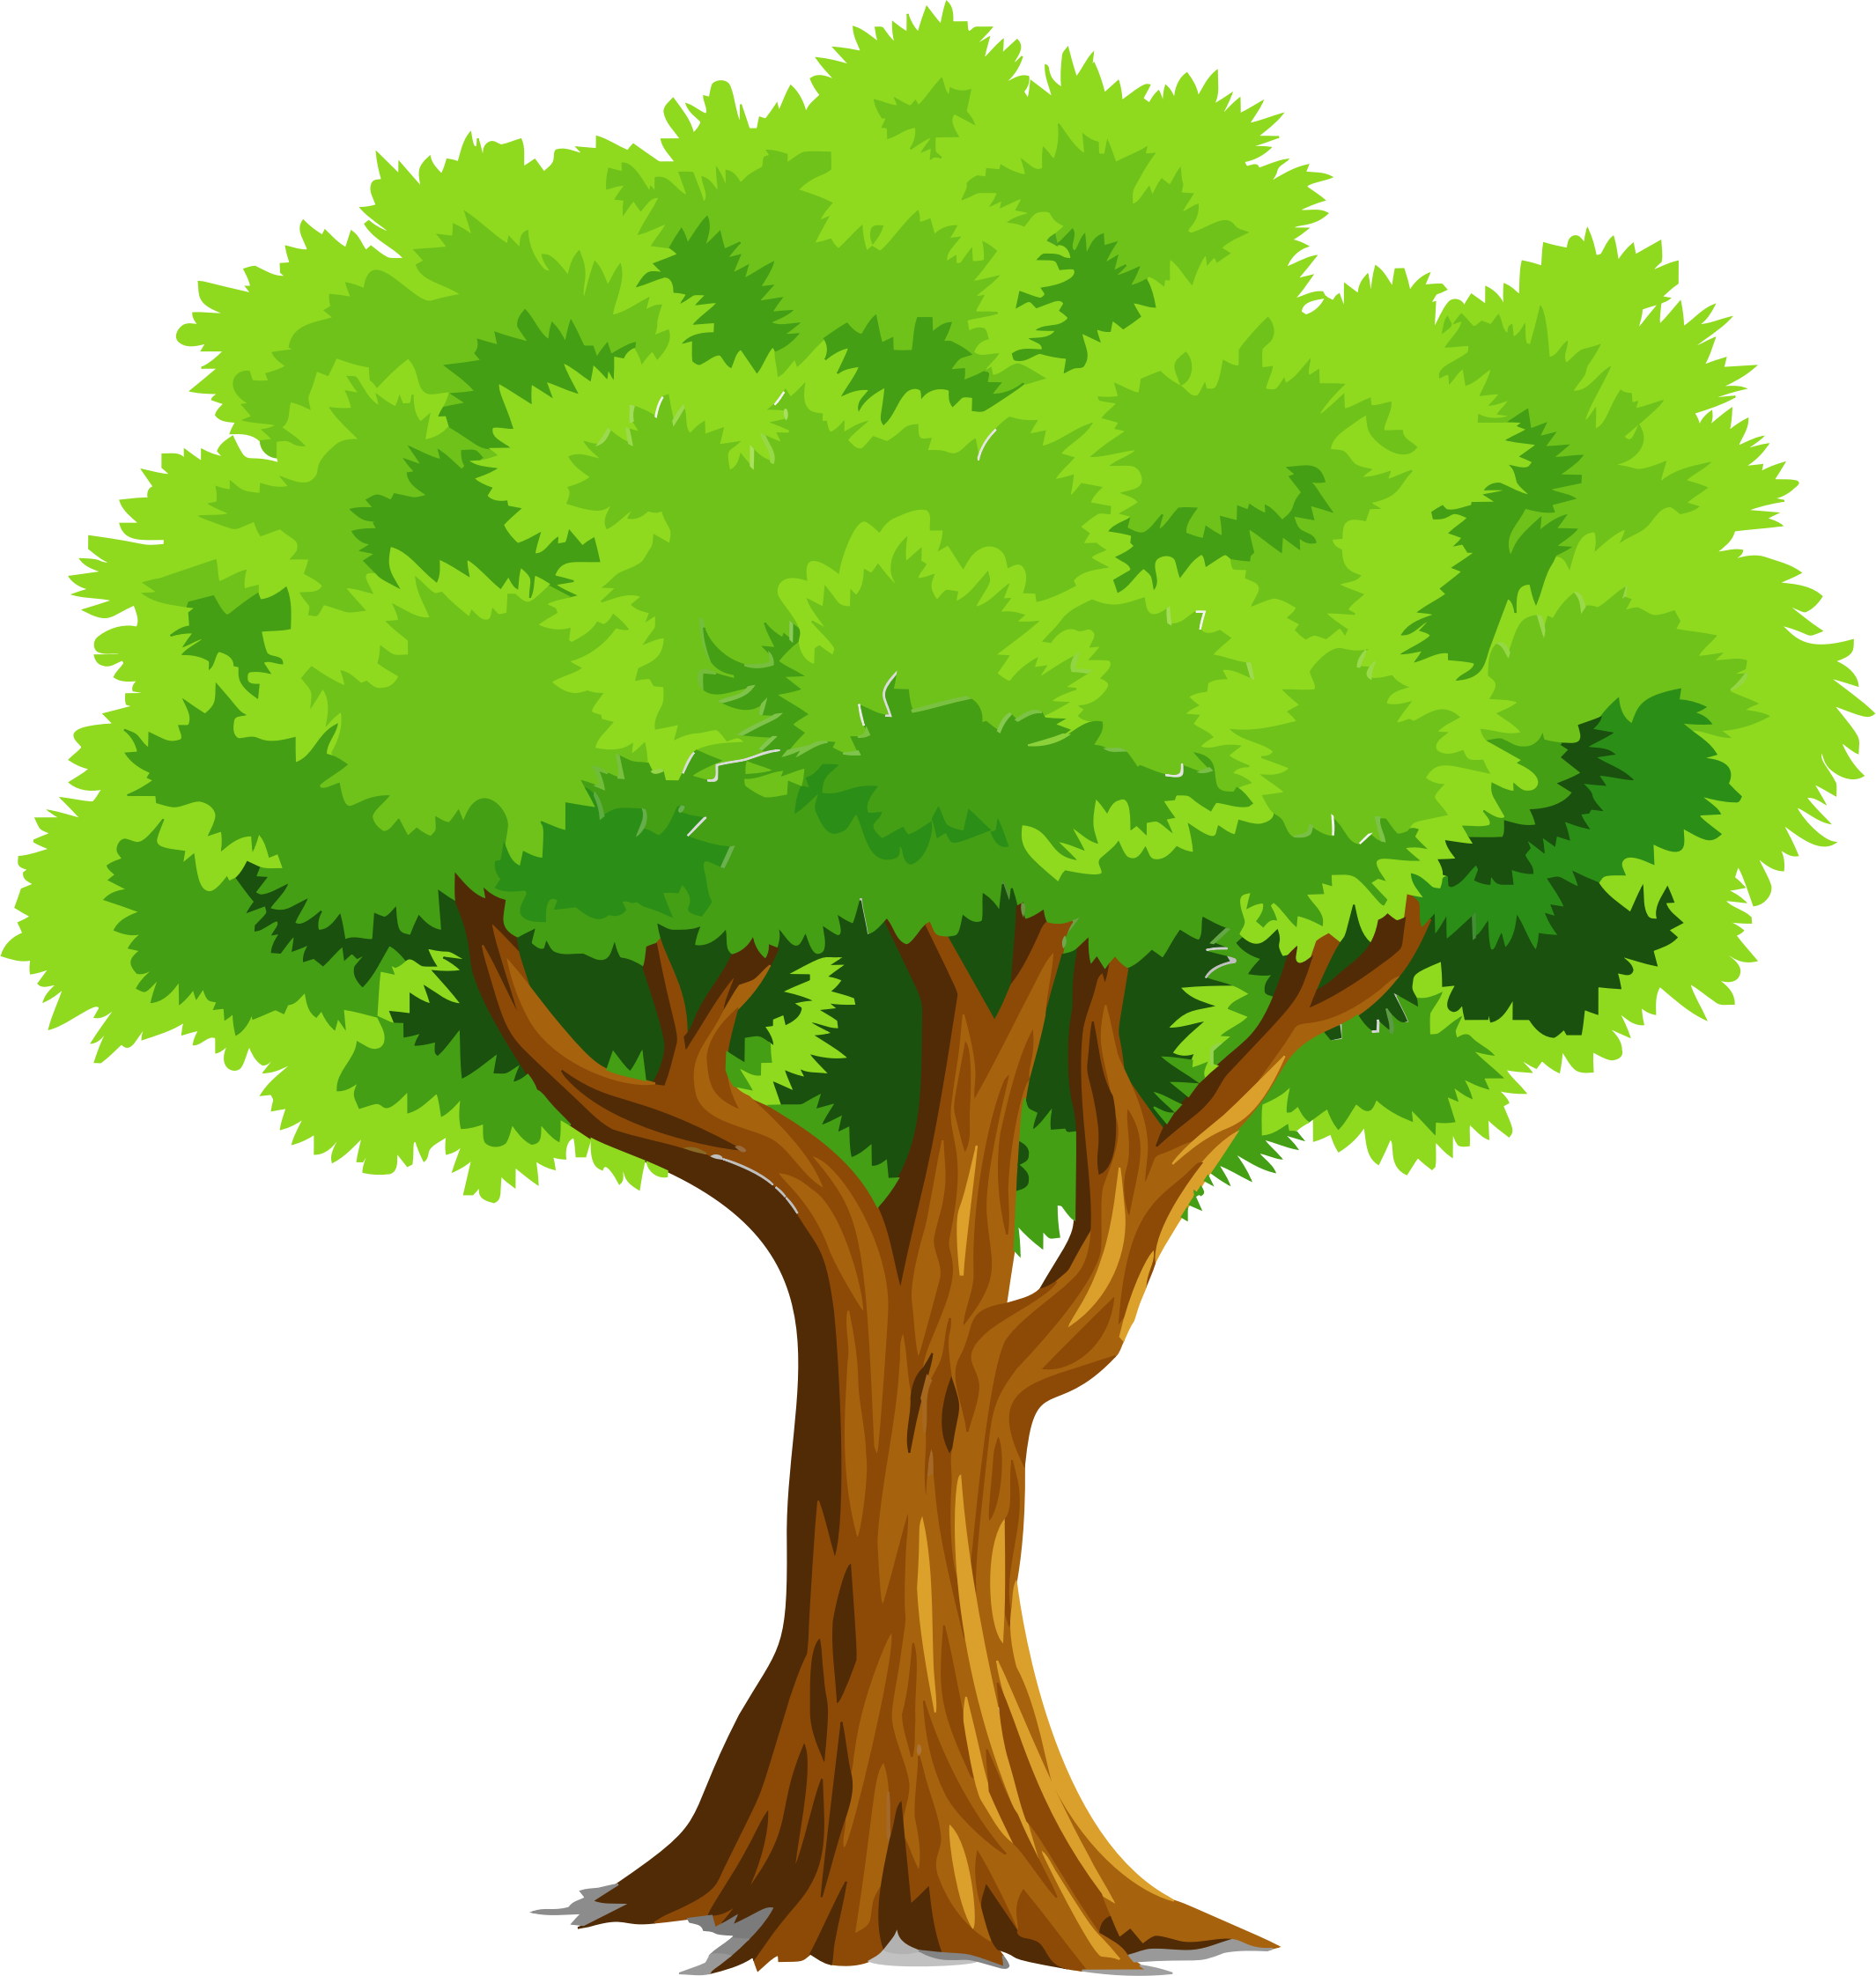 Nature clipart tree. Colorful natural by gdj